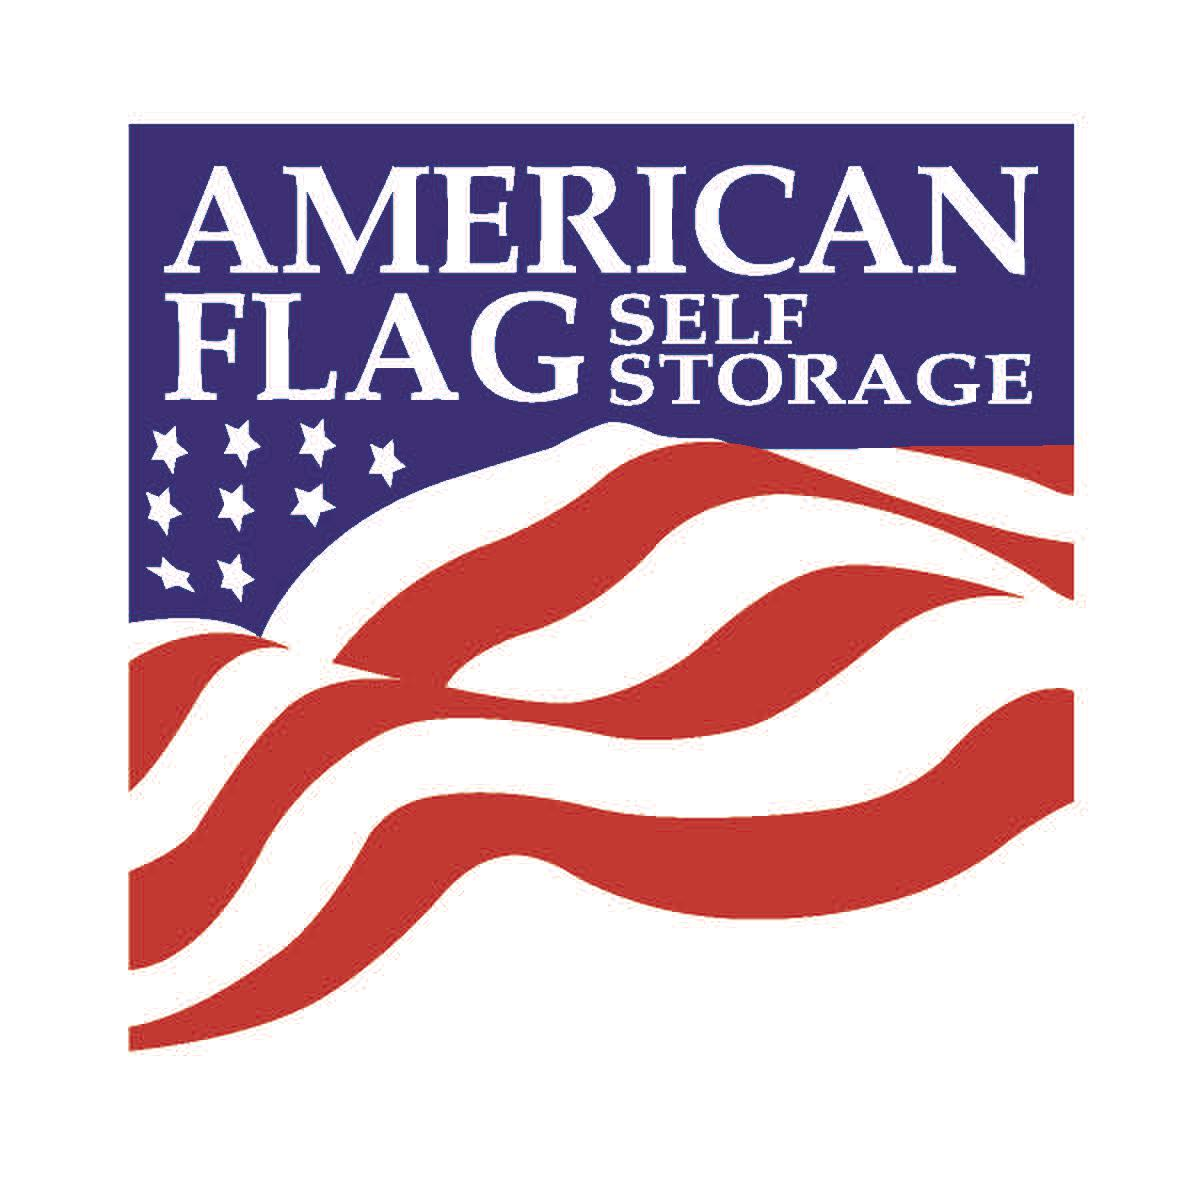 American Flag Self Storage - Fayetteville, NC 28303 - (910)822-5221 | ShowMeLocal.com